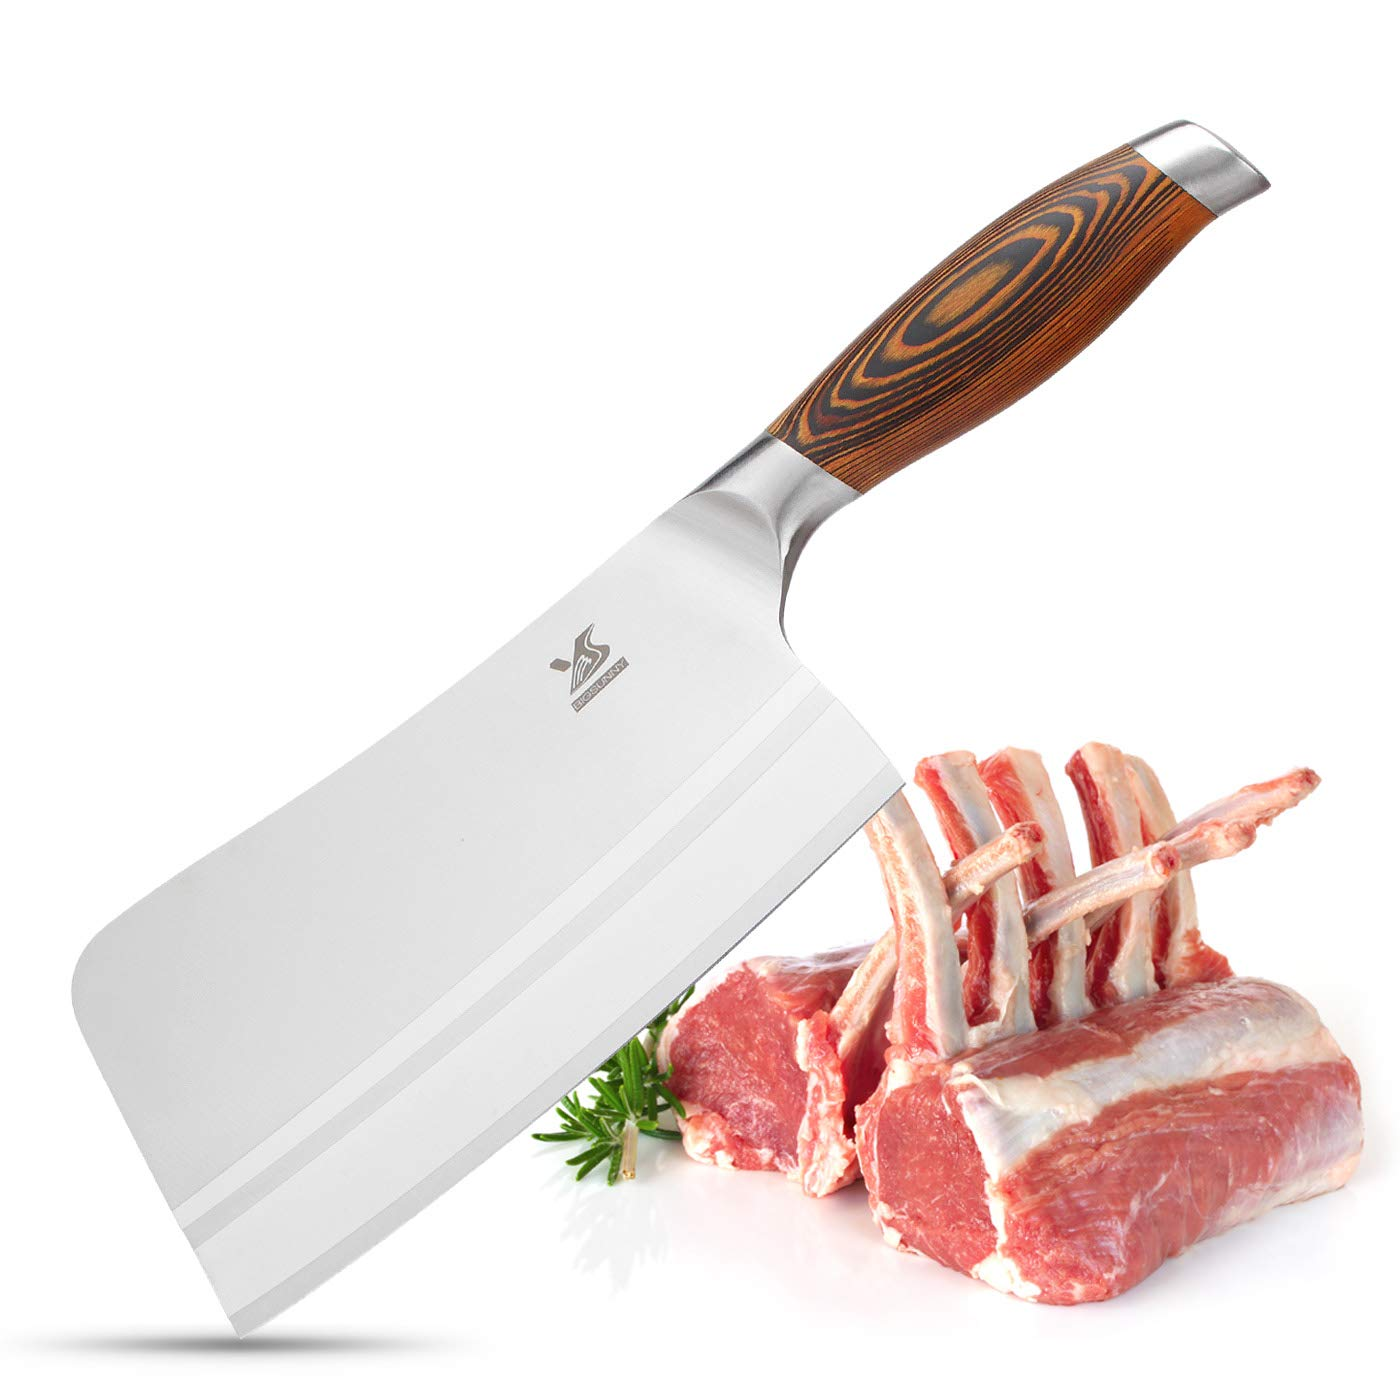 MSY BIGSUNNY 7Inch Stainless Steel Bone Chopping Knife Cleaver Butcher Knife with Pakkawood Handle Multipurpose Use for Home Kitchen